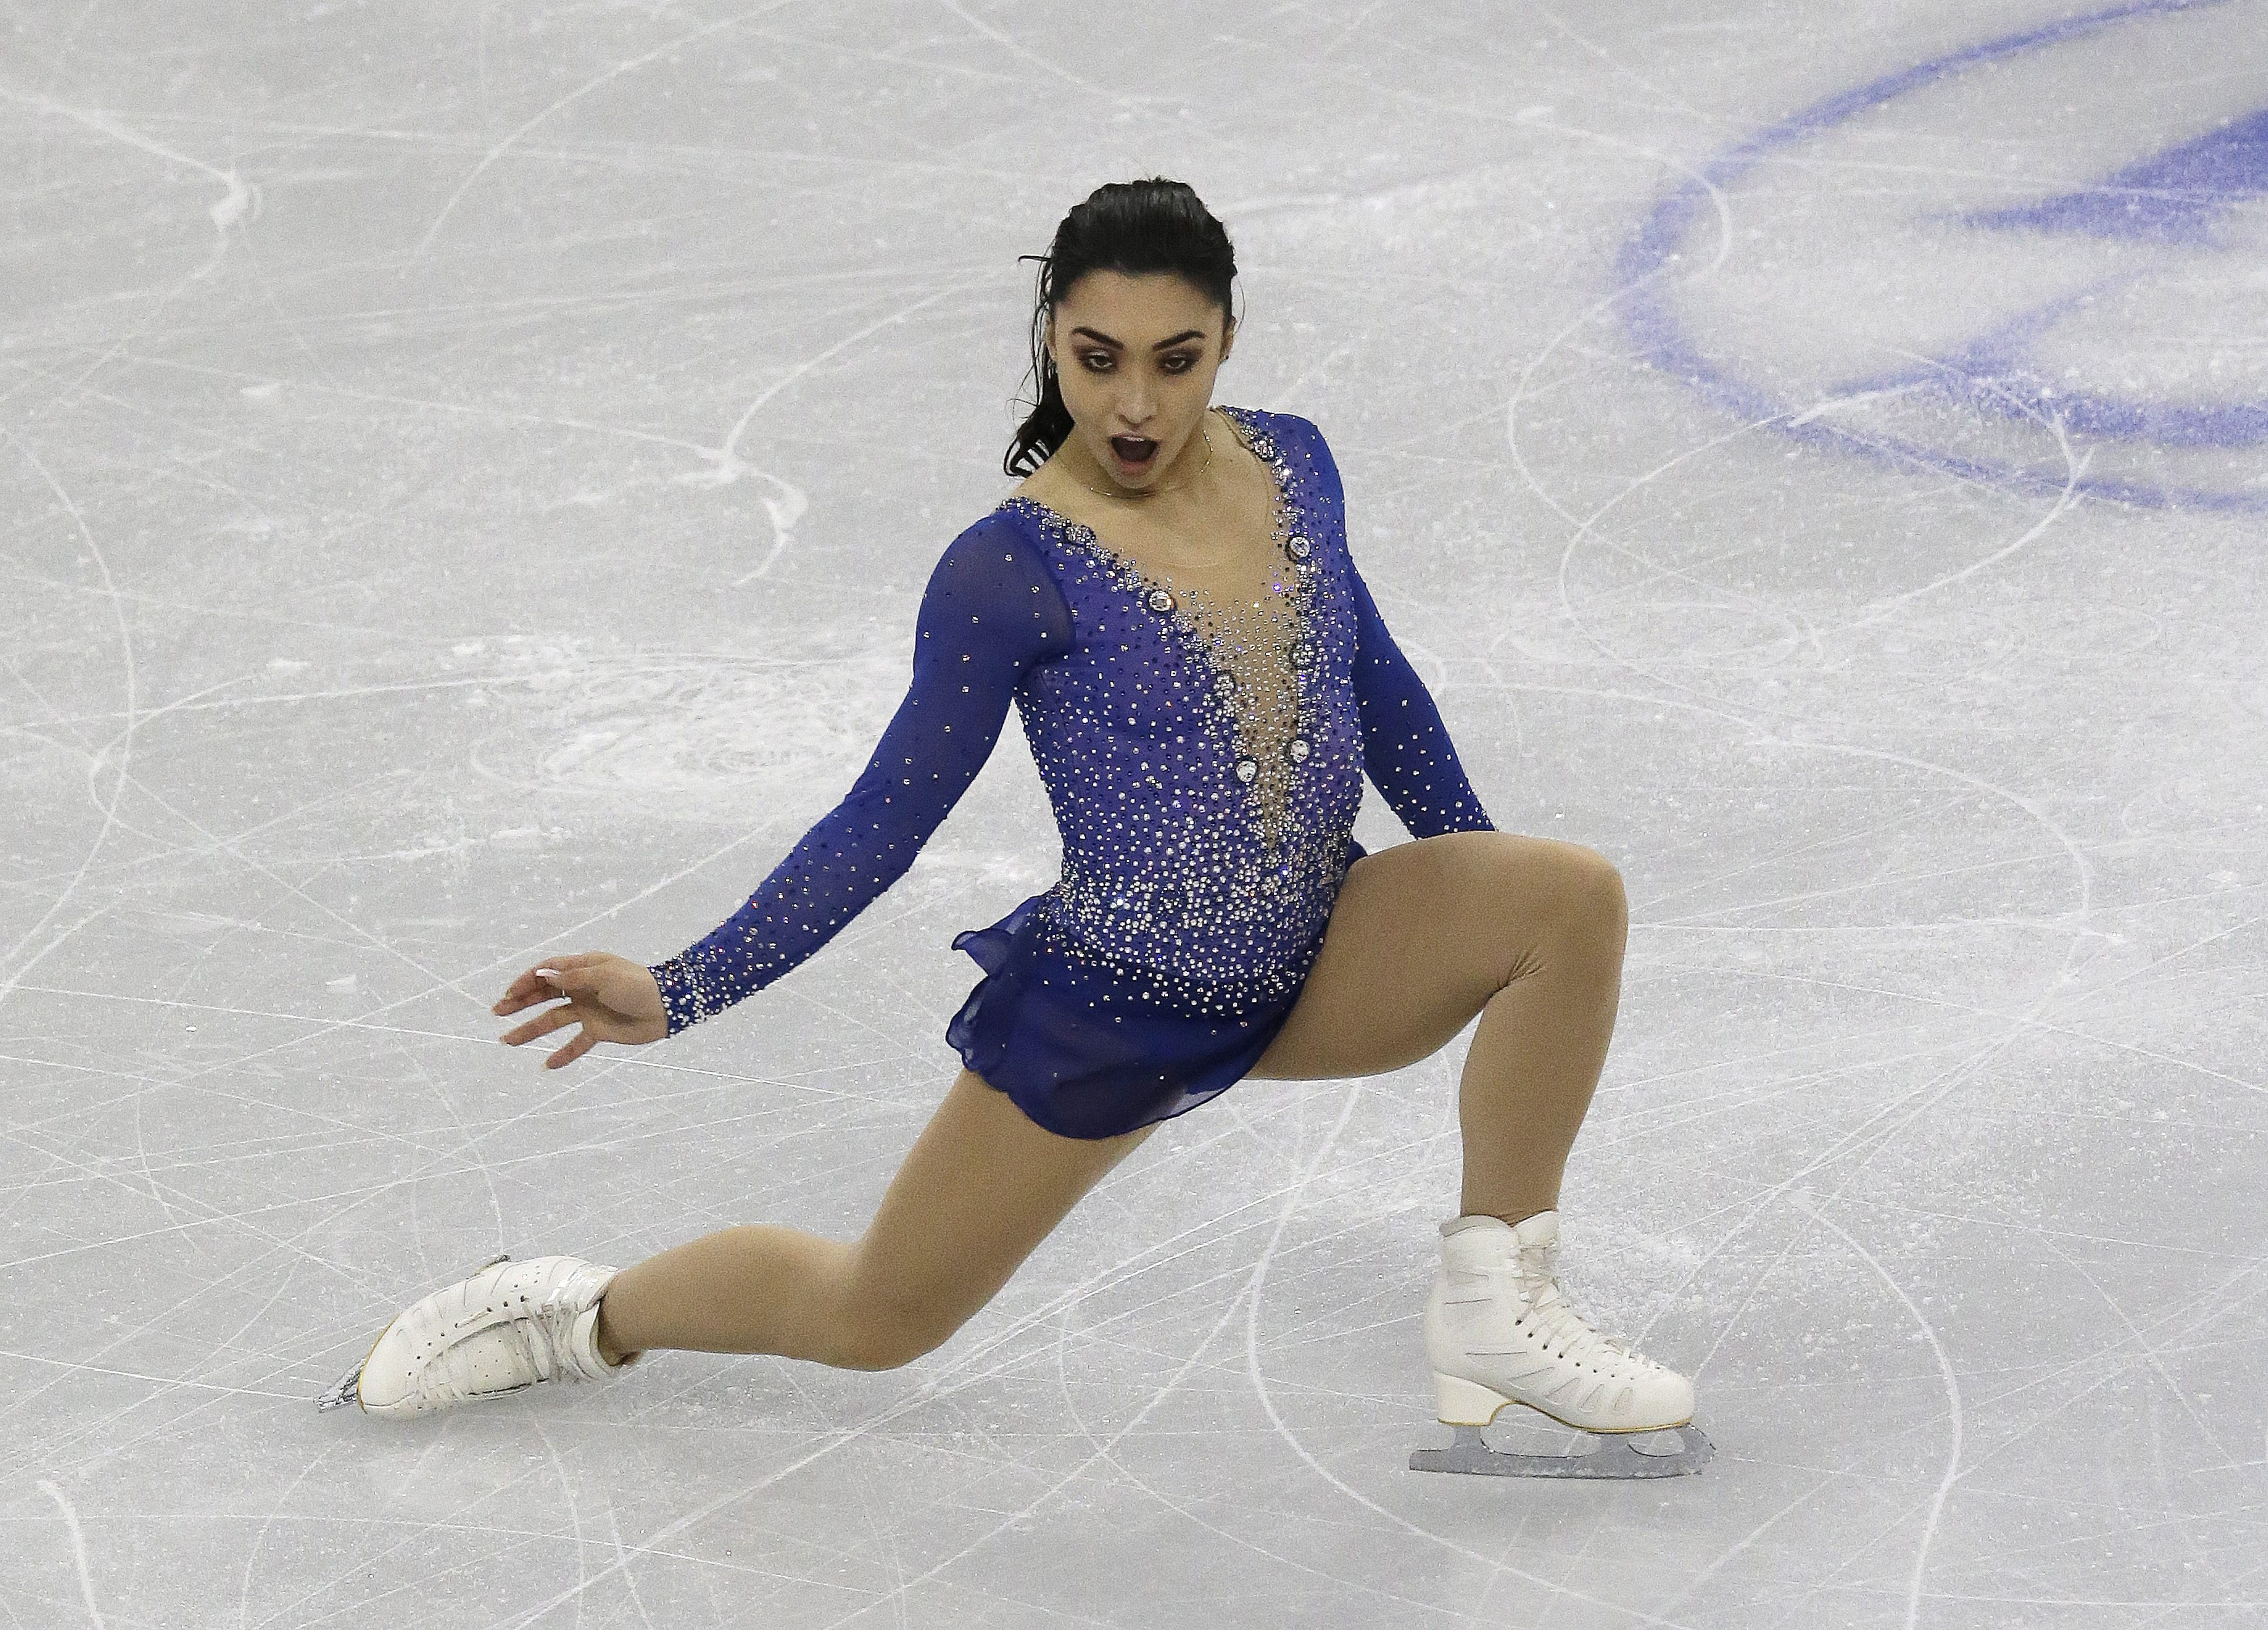 Silver medalist Gabrielle Daleman of Canada competes in the Ladies Free Skating at the ISU Four Continents Figure Skating Championships in Gangneung, South Korea, Saturday, Feb. 18, 2017. (AP Photo/Ahn Young-joon)